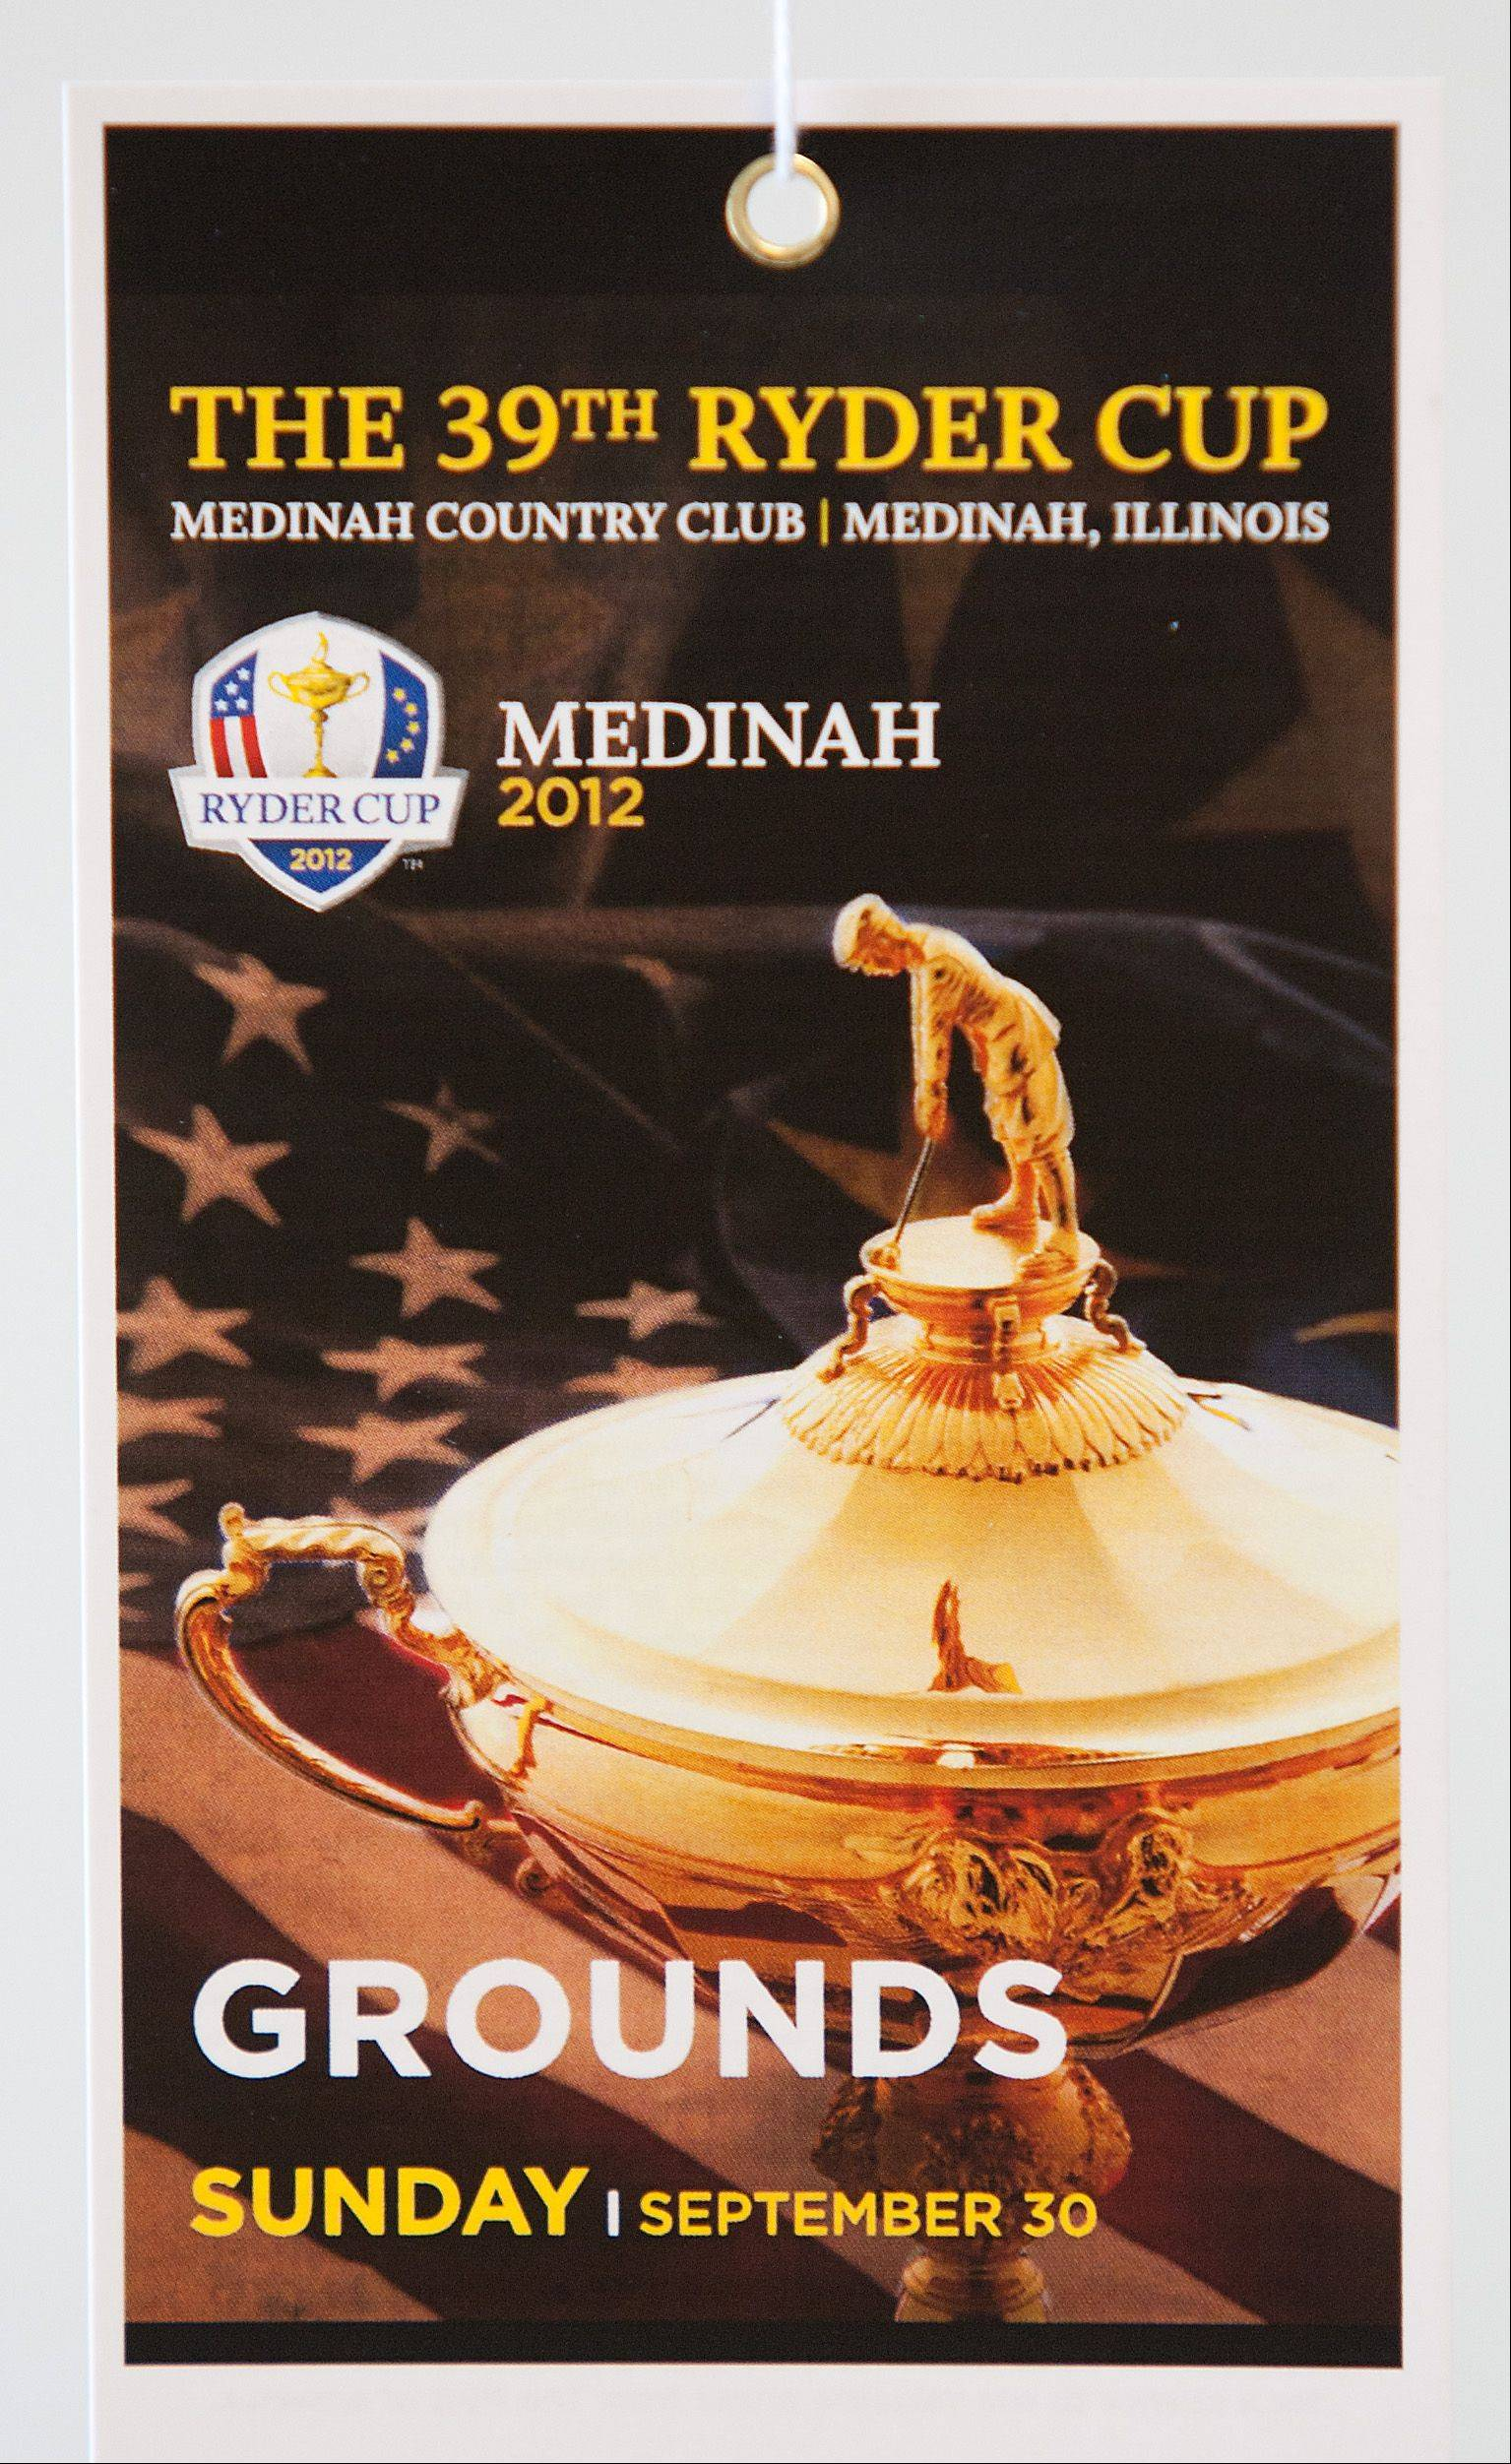 Eric Schmidt, executive director of the Ronald McDonald charities office in Oak Brook, is selling tickets to the sold out Ryder Cup. Just prepare to plunk down a few extra bucks, especially for Sunday September 30.